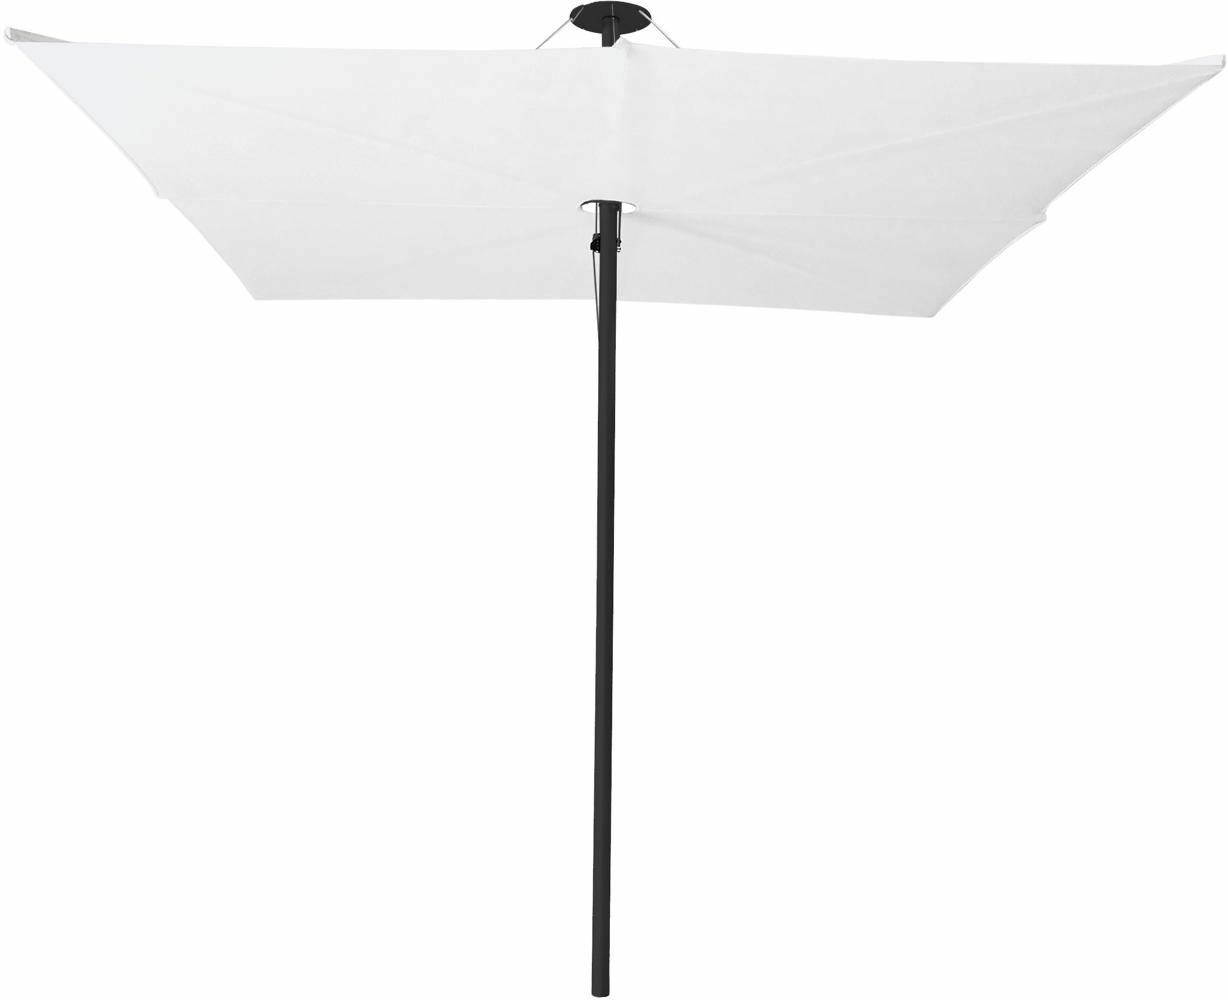 Infina center post umbrella, 3 m square, with frame in Dusk and Solidum Natural canopy.